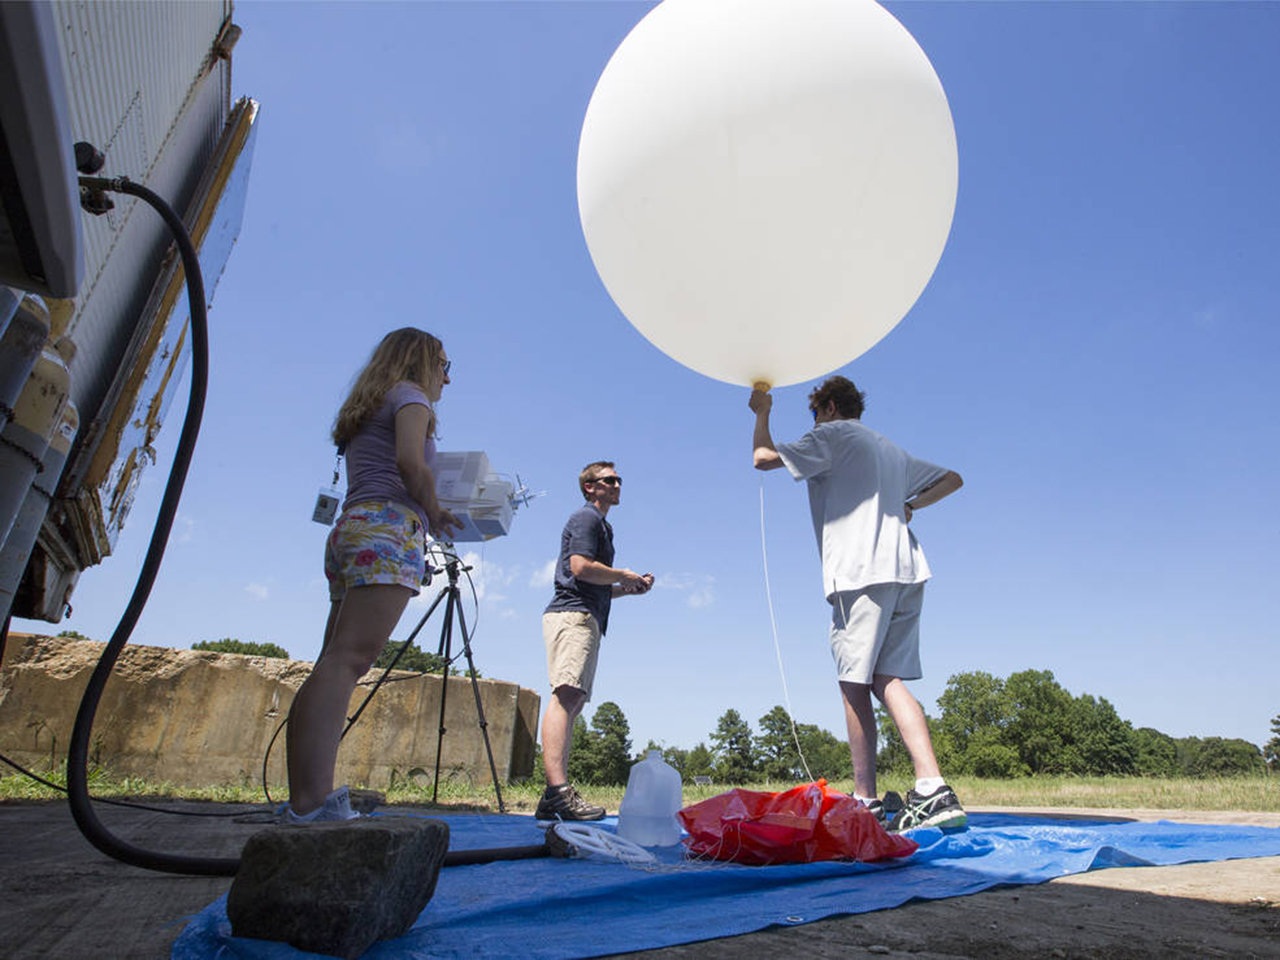 NASA Goddard post-doctoral fellow John Sullivan, center, along with interns Lindsay Rodeo, left, and Lance Nino, prepare to launch a balloon that will take ozone measurements in the skies over southeastern Virginia.